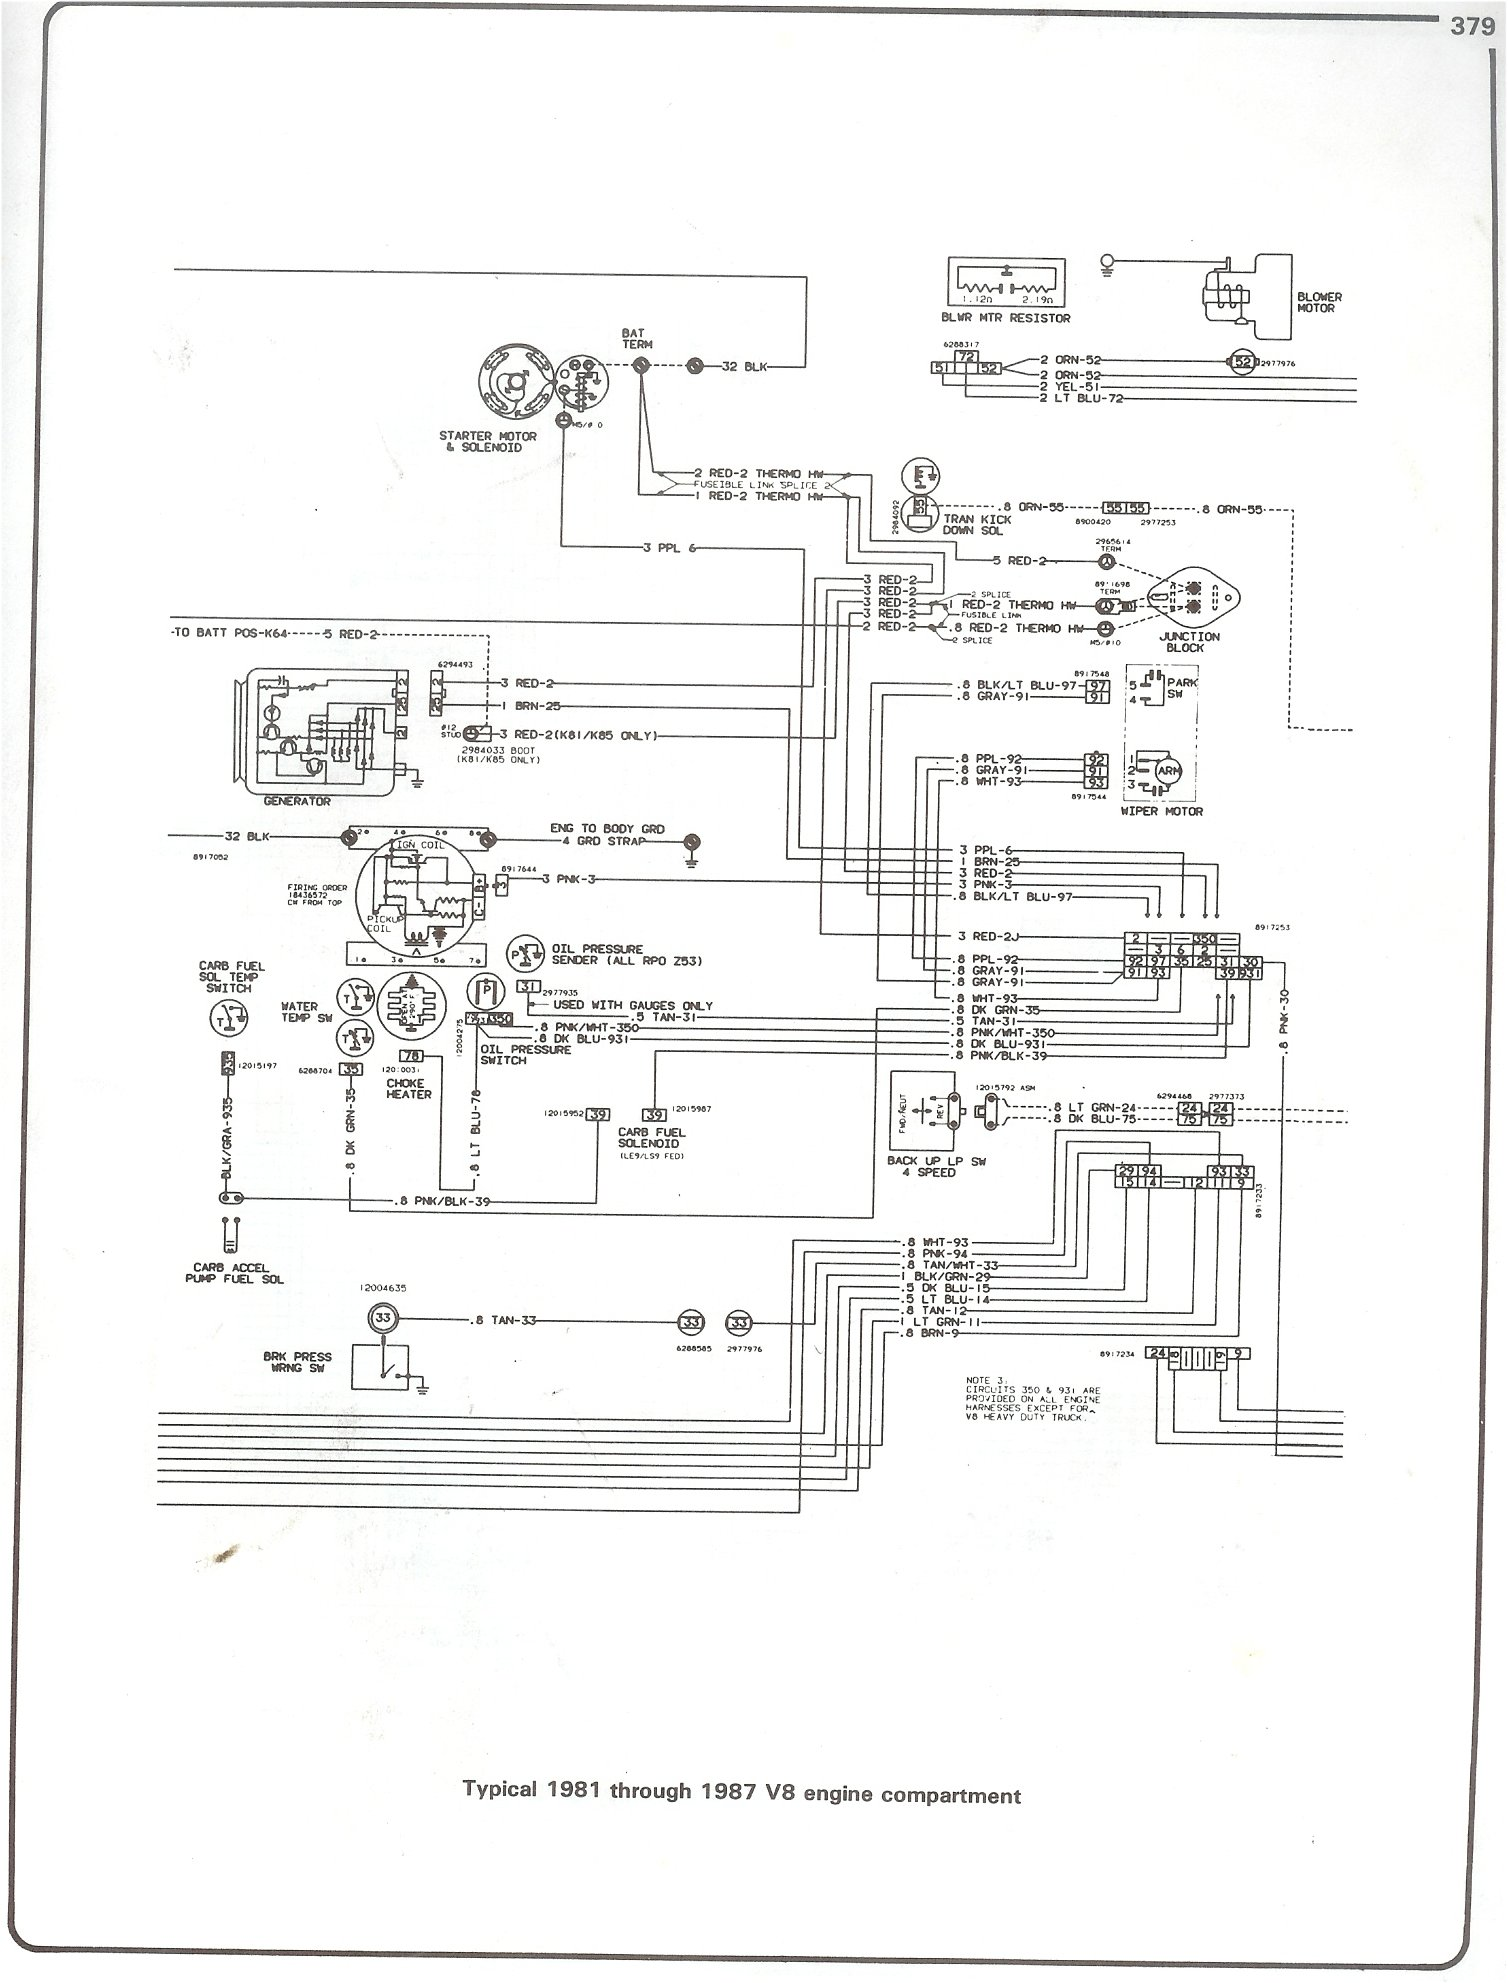 chevy wiring diagrams chevy wiring diagrams free wiring diagrams rh parsplus co Ford Ignition Switch Wiring Diagram Typical Ignition Switch Wiring Diagram